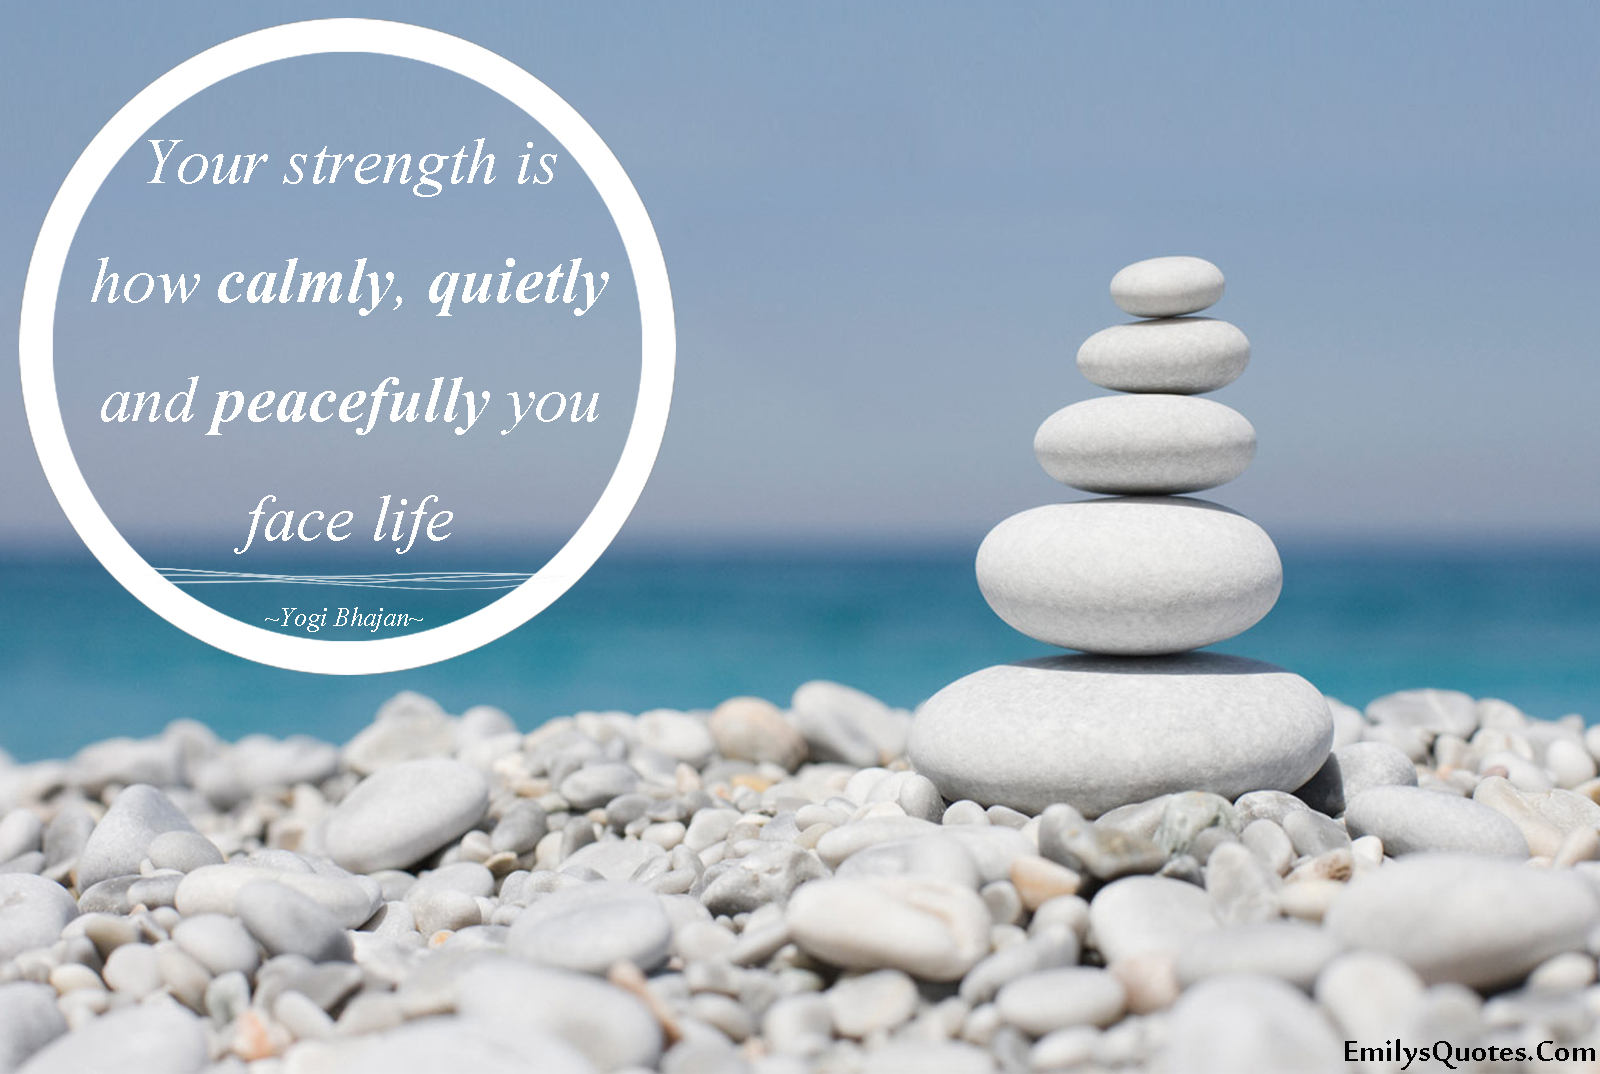 Your Strength Is How Calmly Quietly And Peacefully You Face Life Popular Inspirational Quotes At Emilysquotes